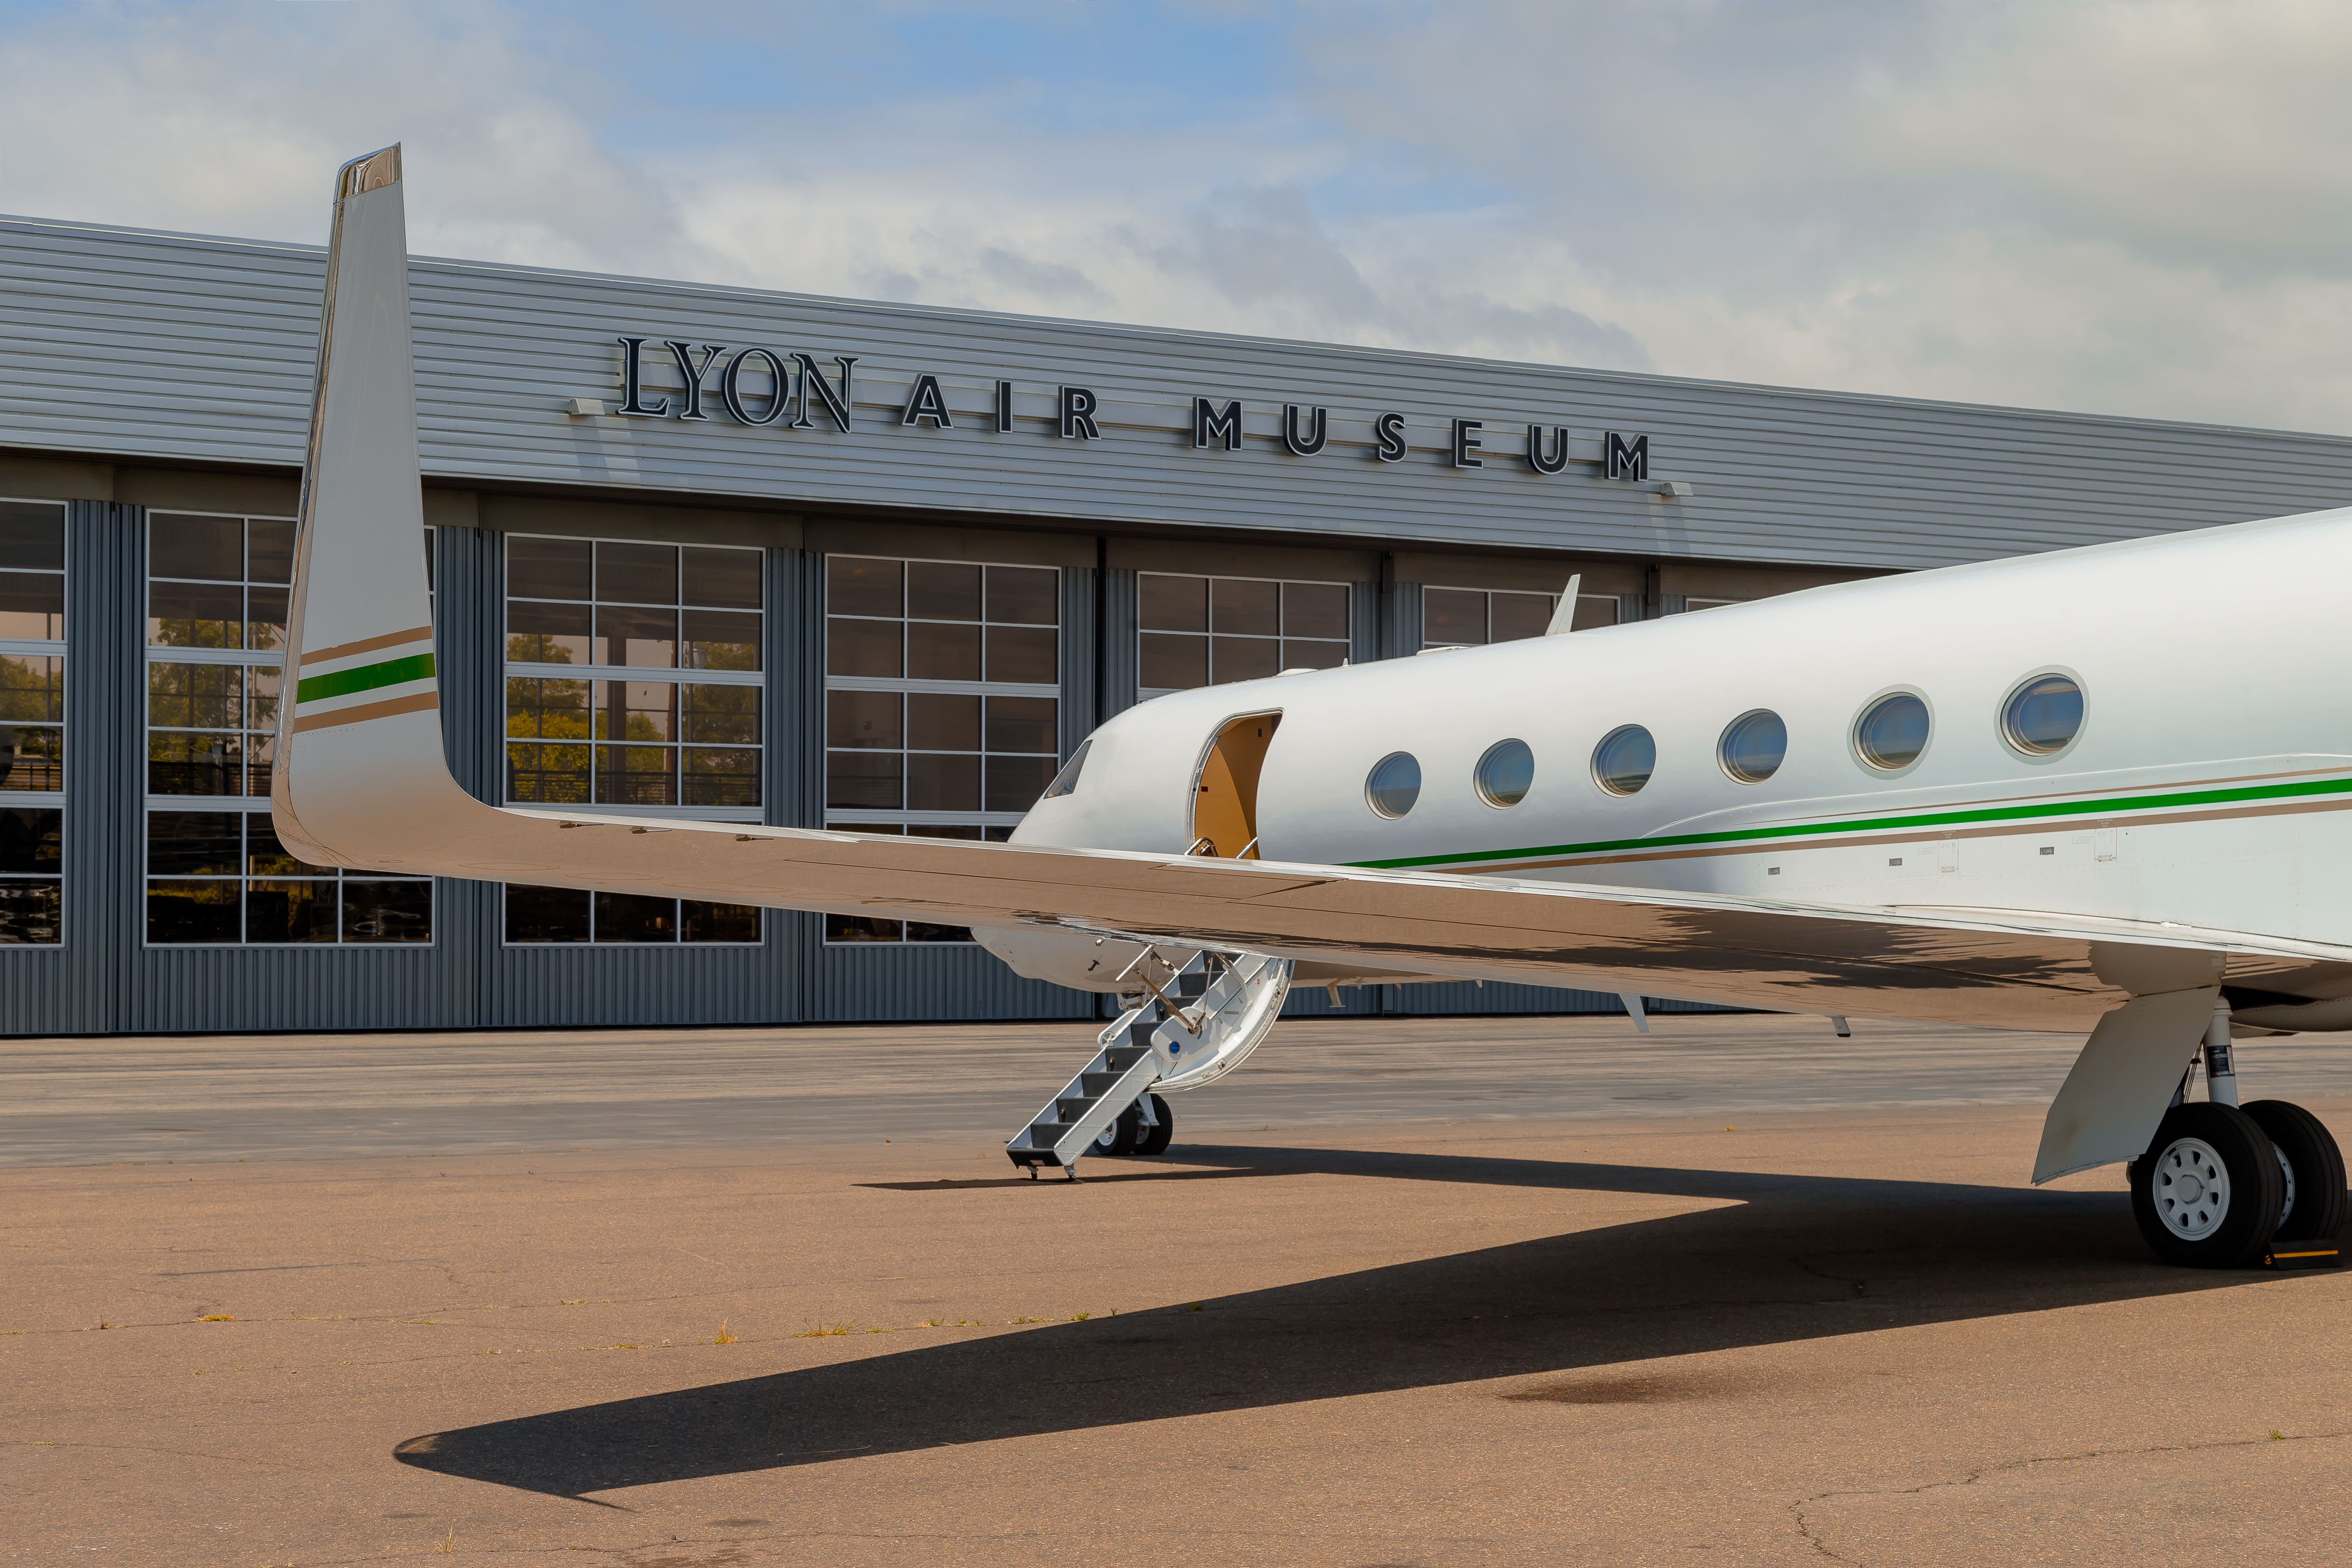 fly in or out of your private event at lyon air museum jetset rh pinterest com